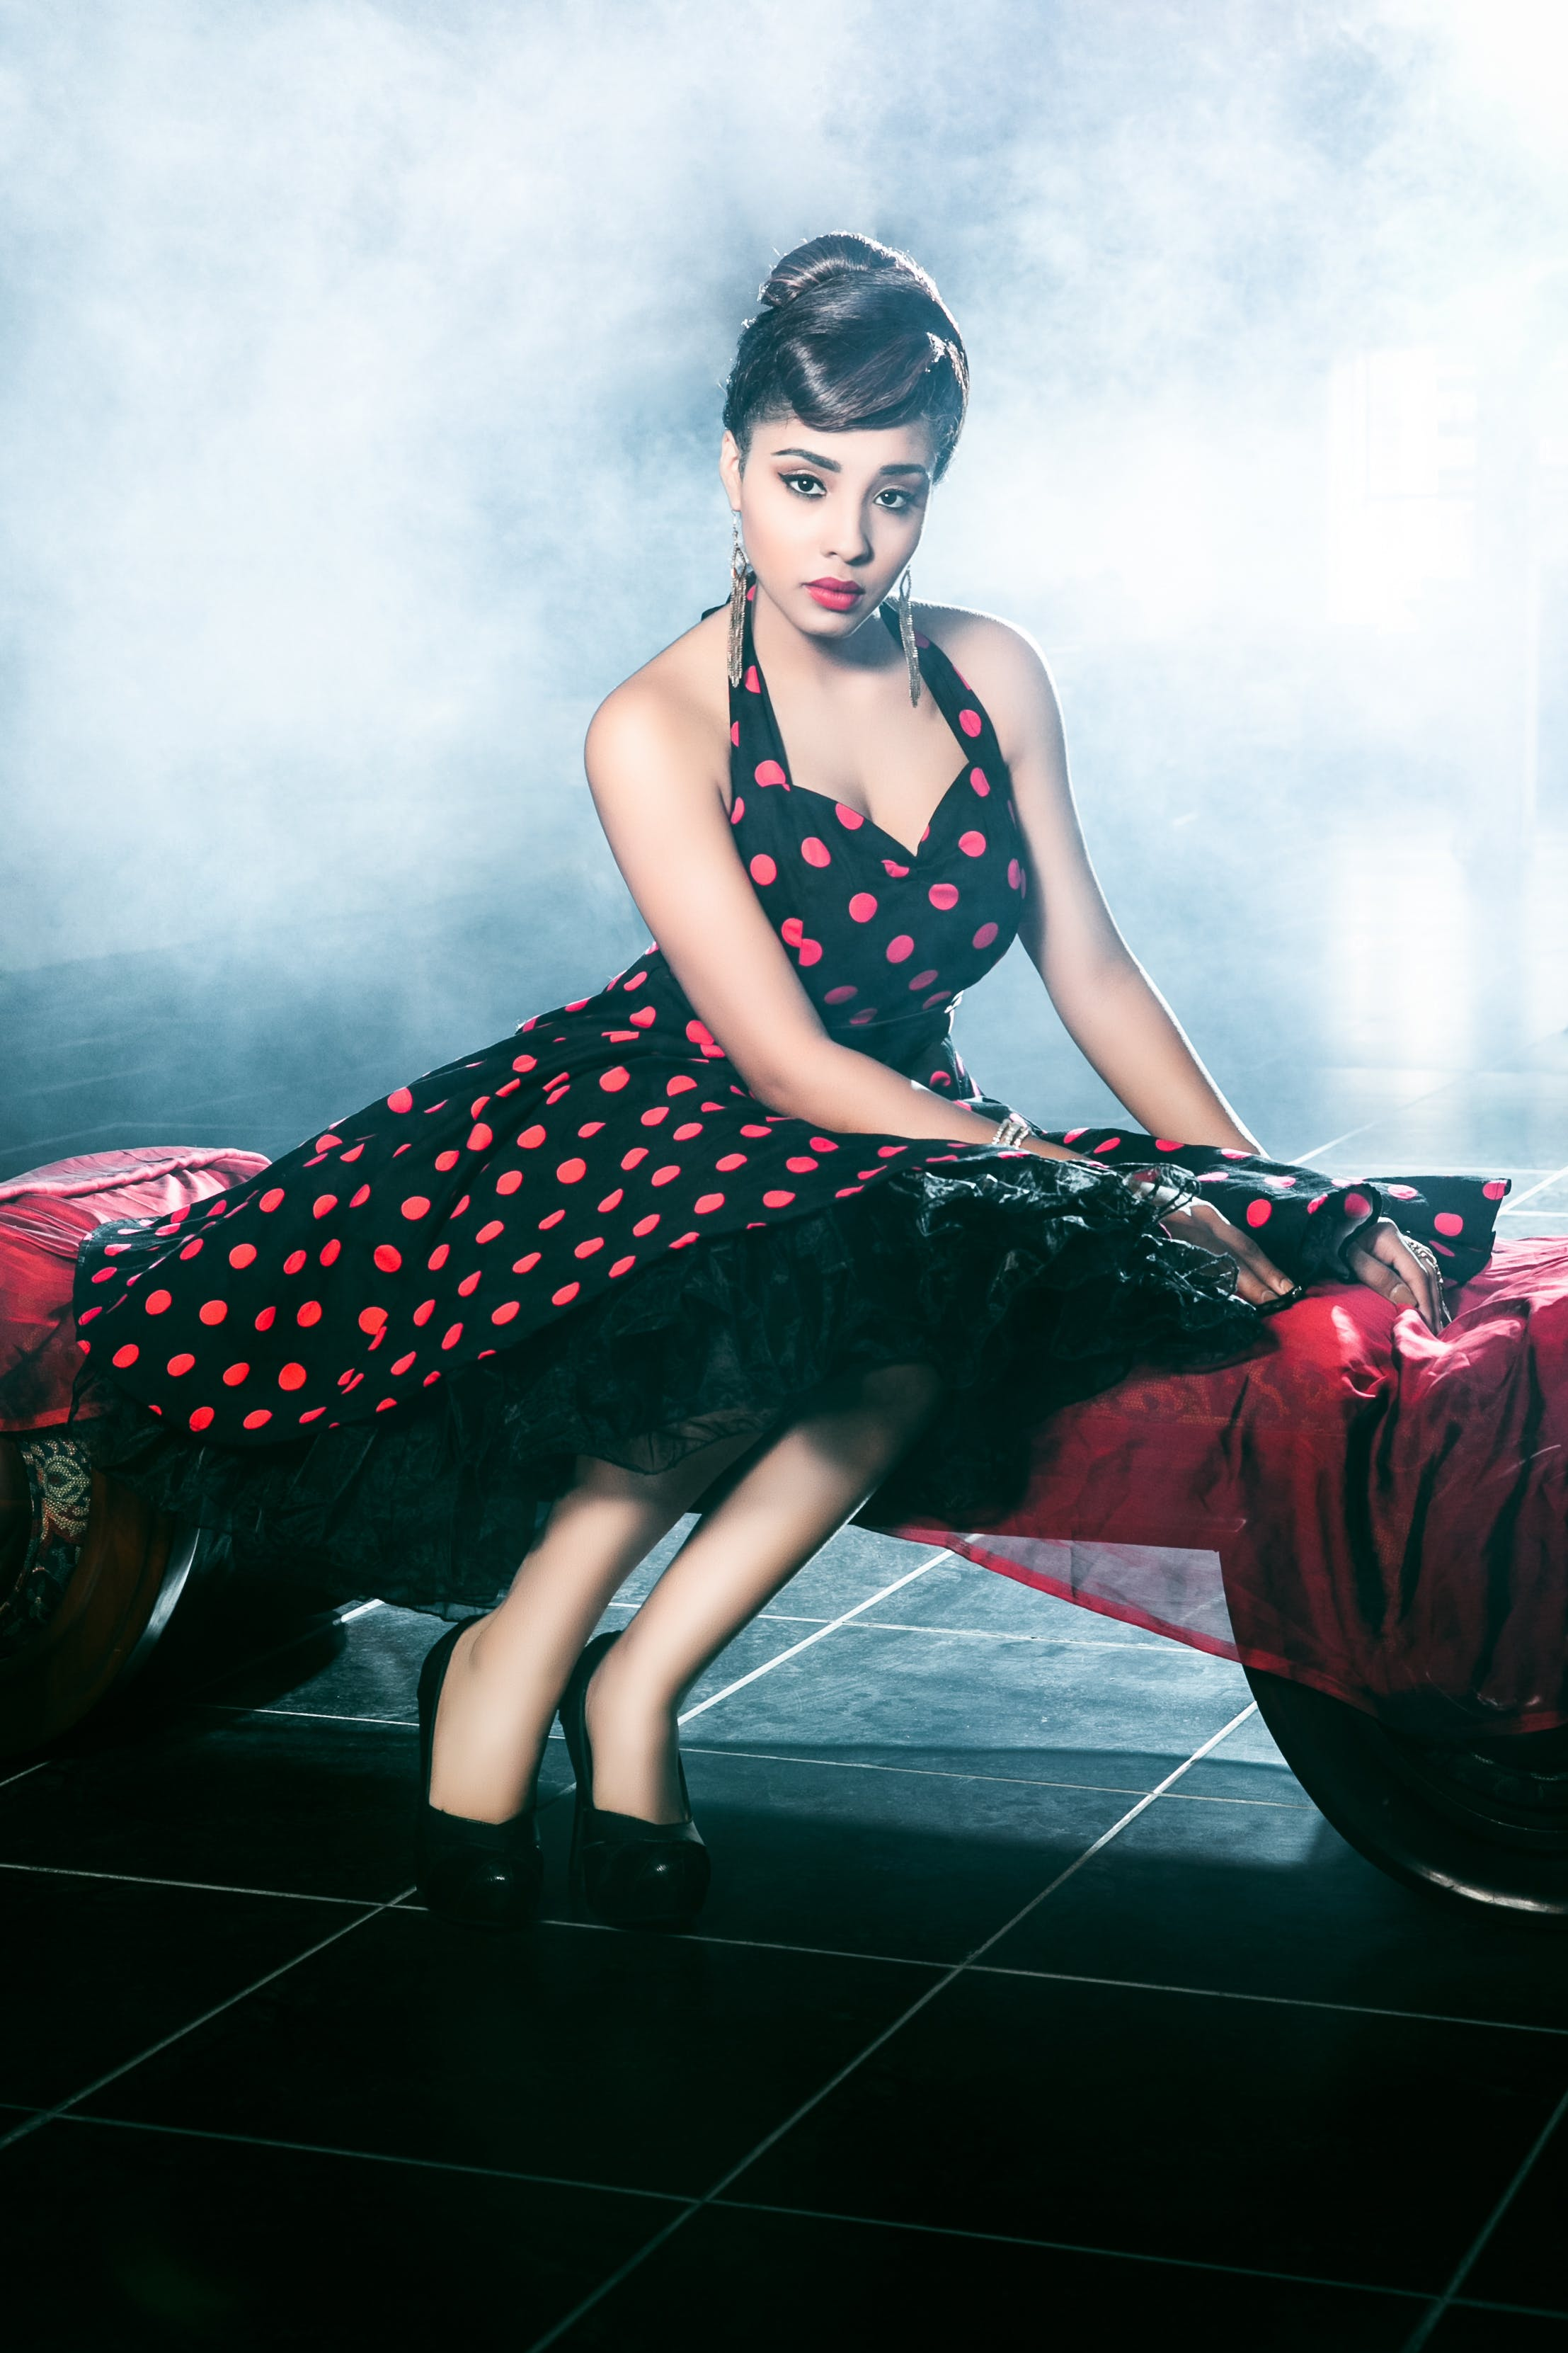 Woman Wearing Black and Red Polka-dot Dress